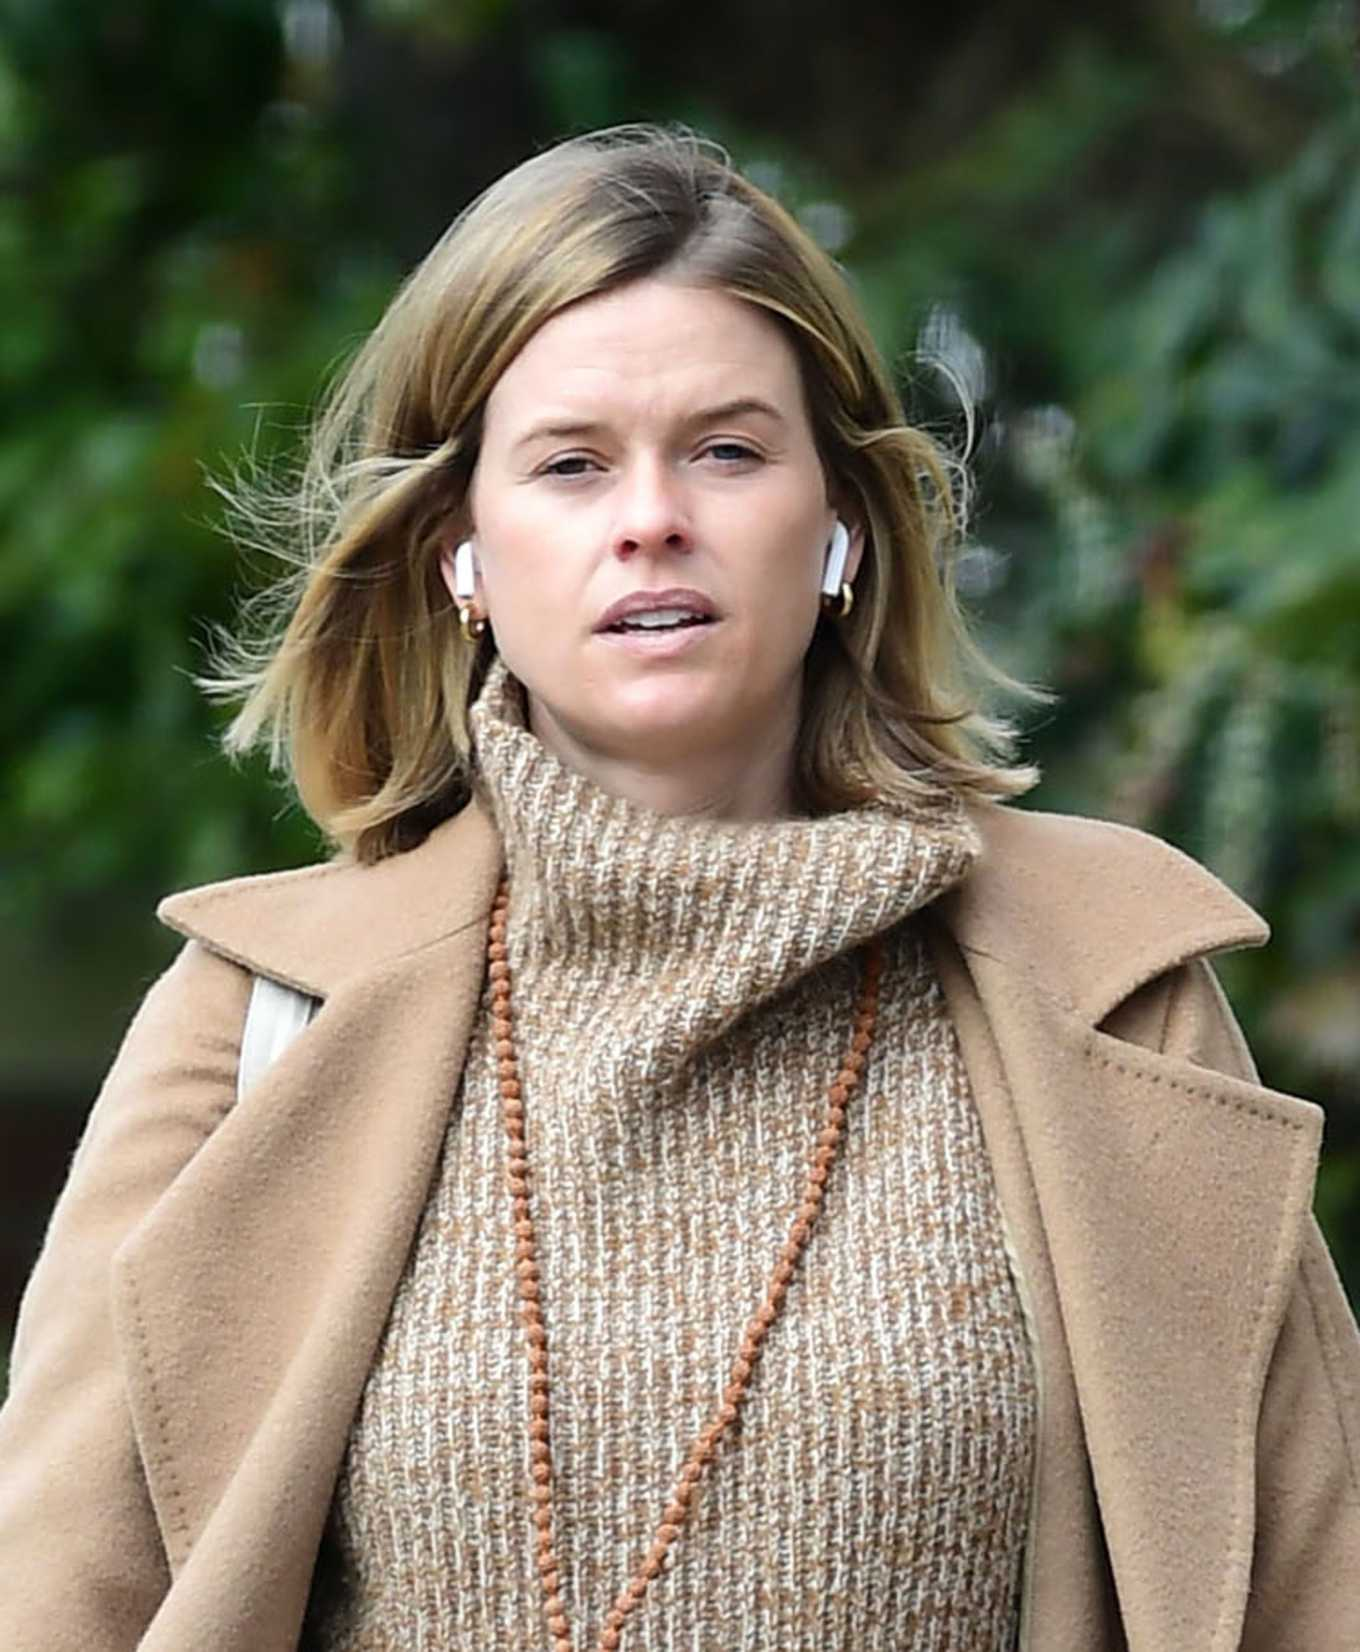 Alice Eve out and about in London during the Coronavirus lockdown